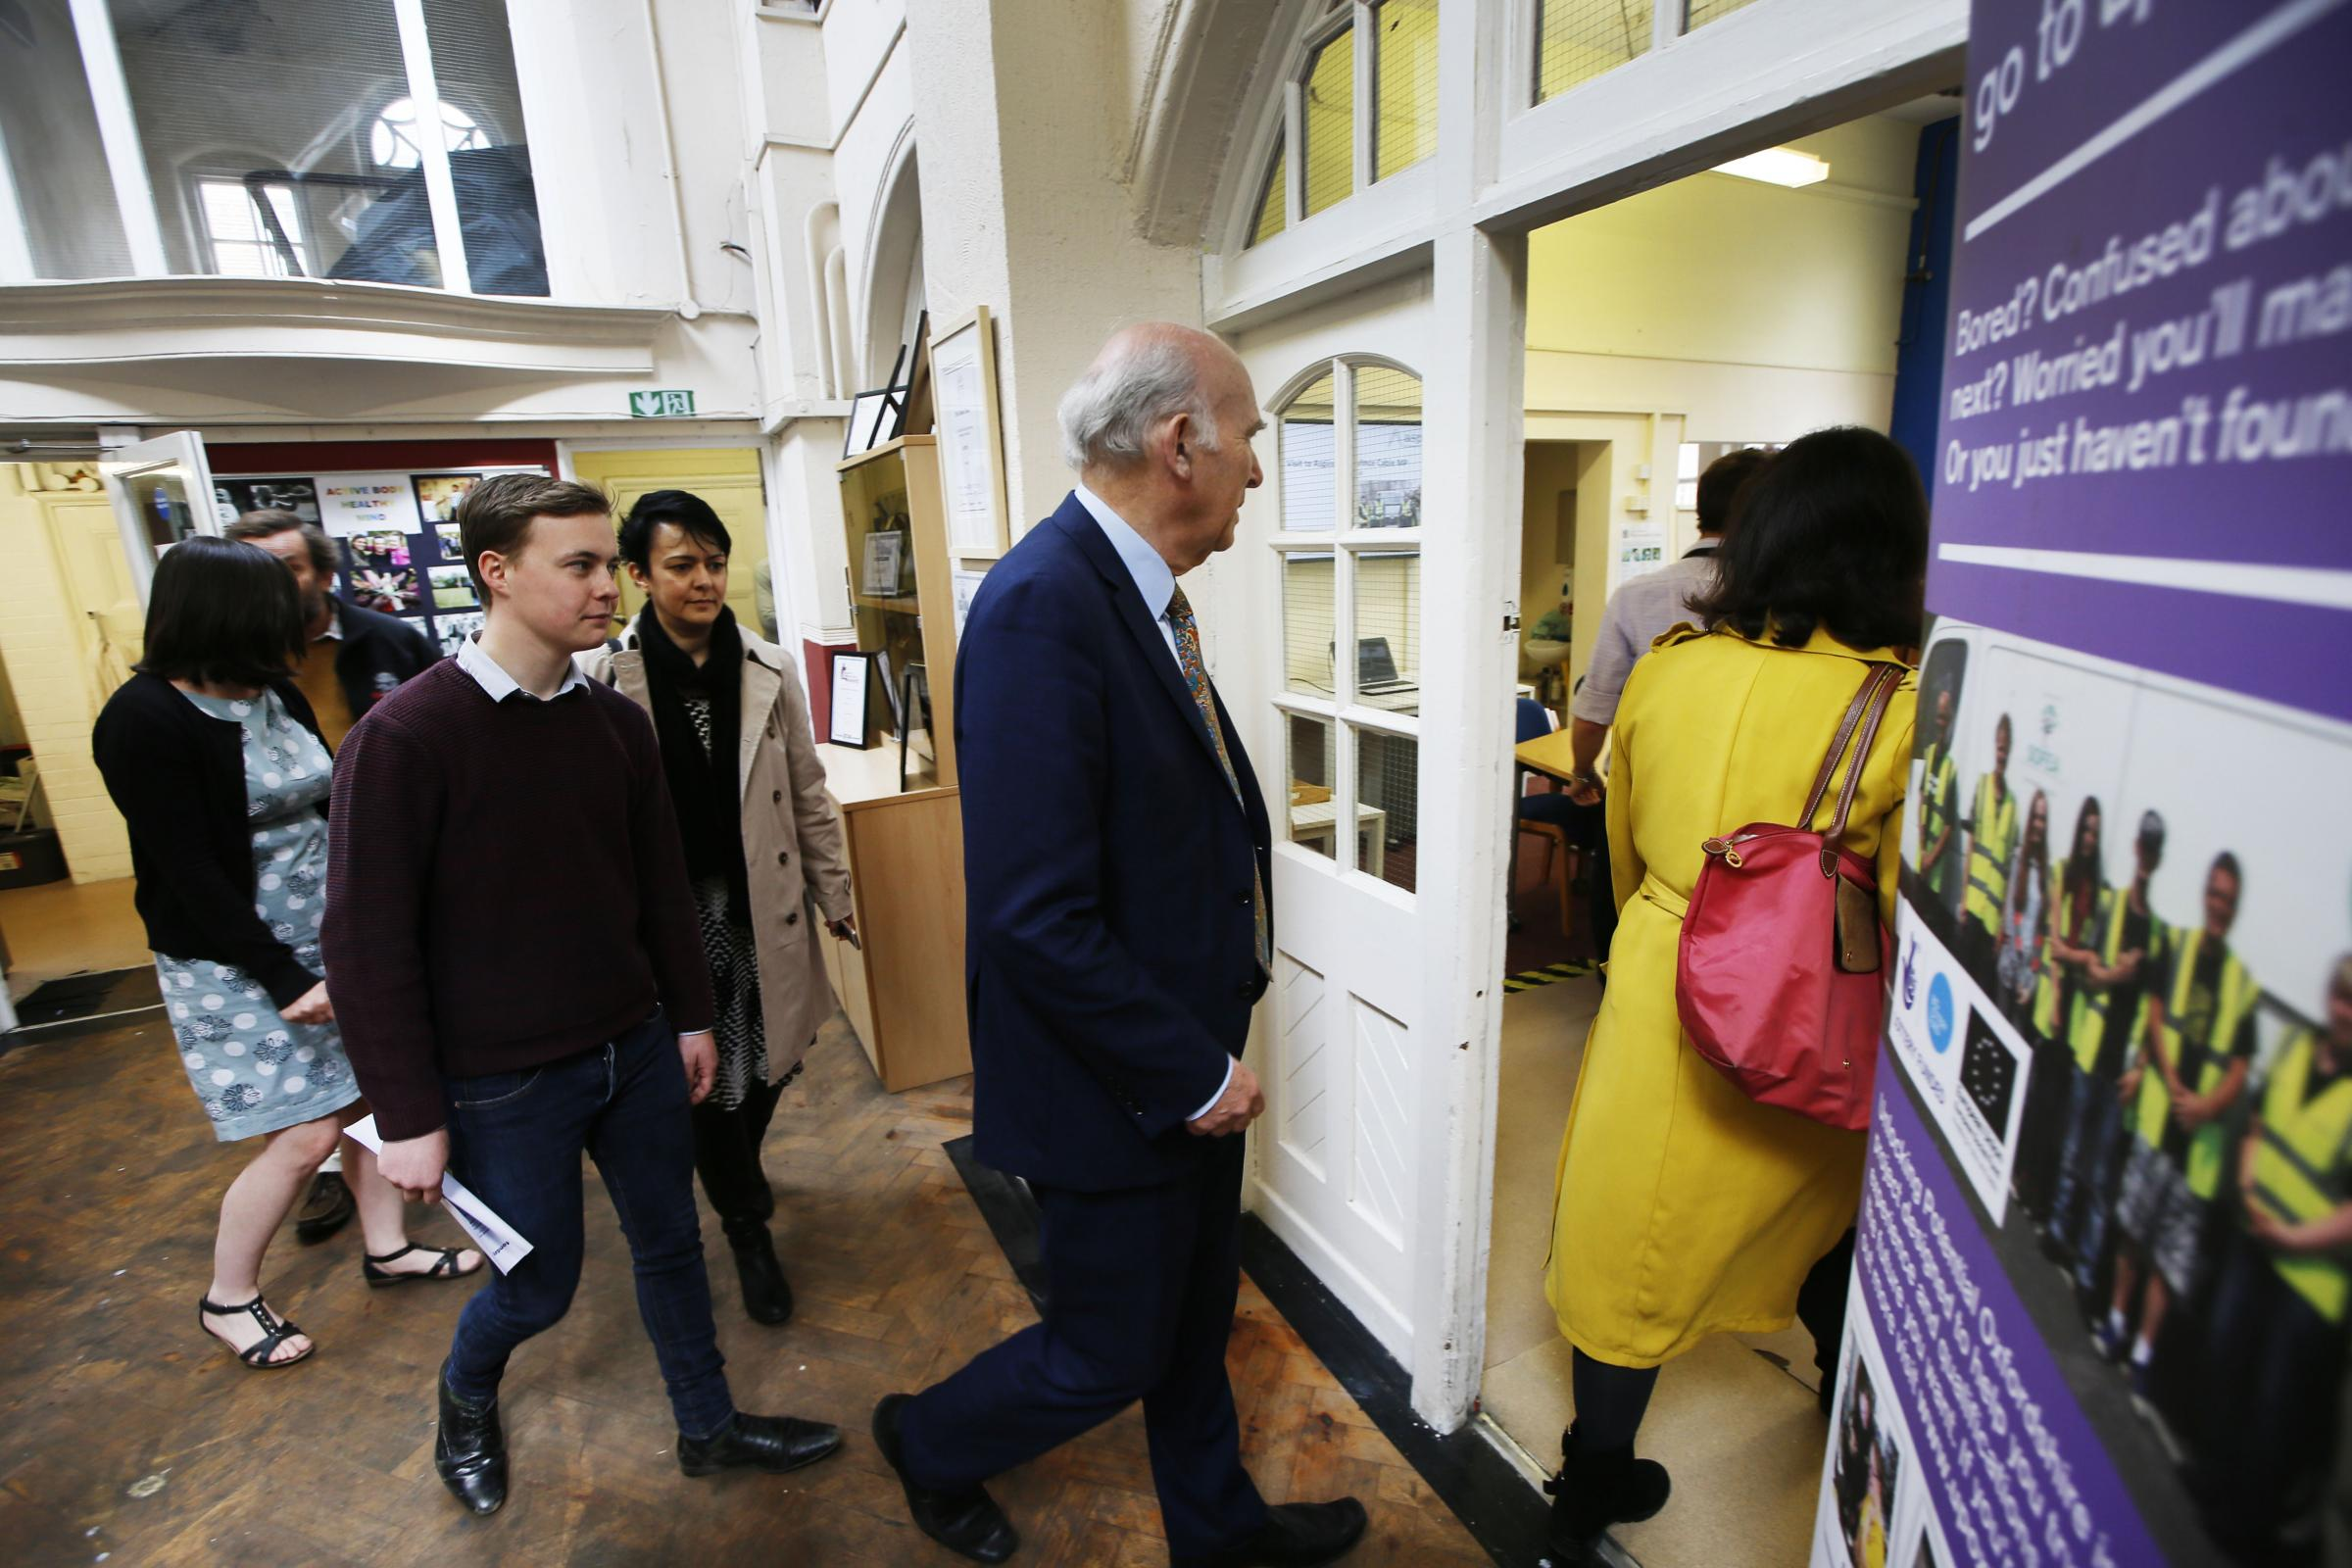 Vince Cable MP, Leader of the Liberal Democrats, and Layla Moran MP visiting Aspire to speak about the work they do, notably the impact that they have on preventing homelessness.23.4.2018Picture by Ed Nix